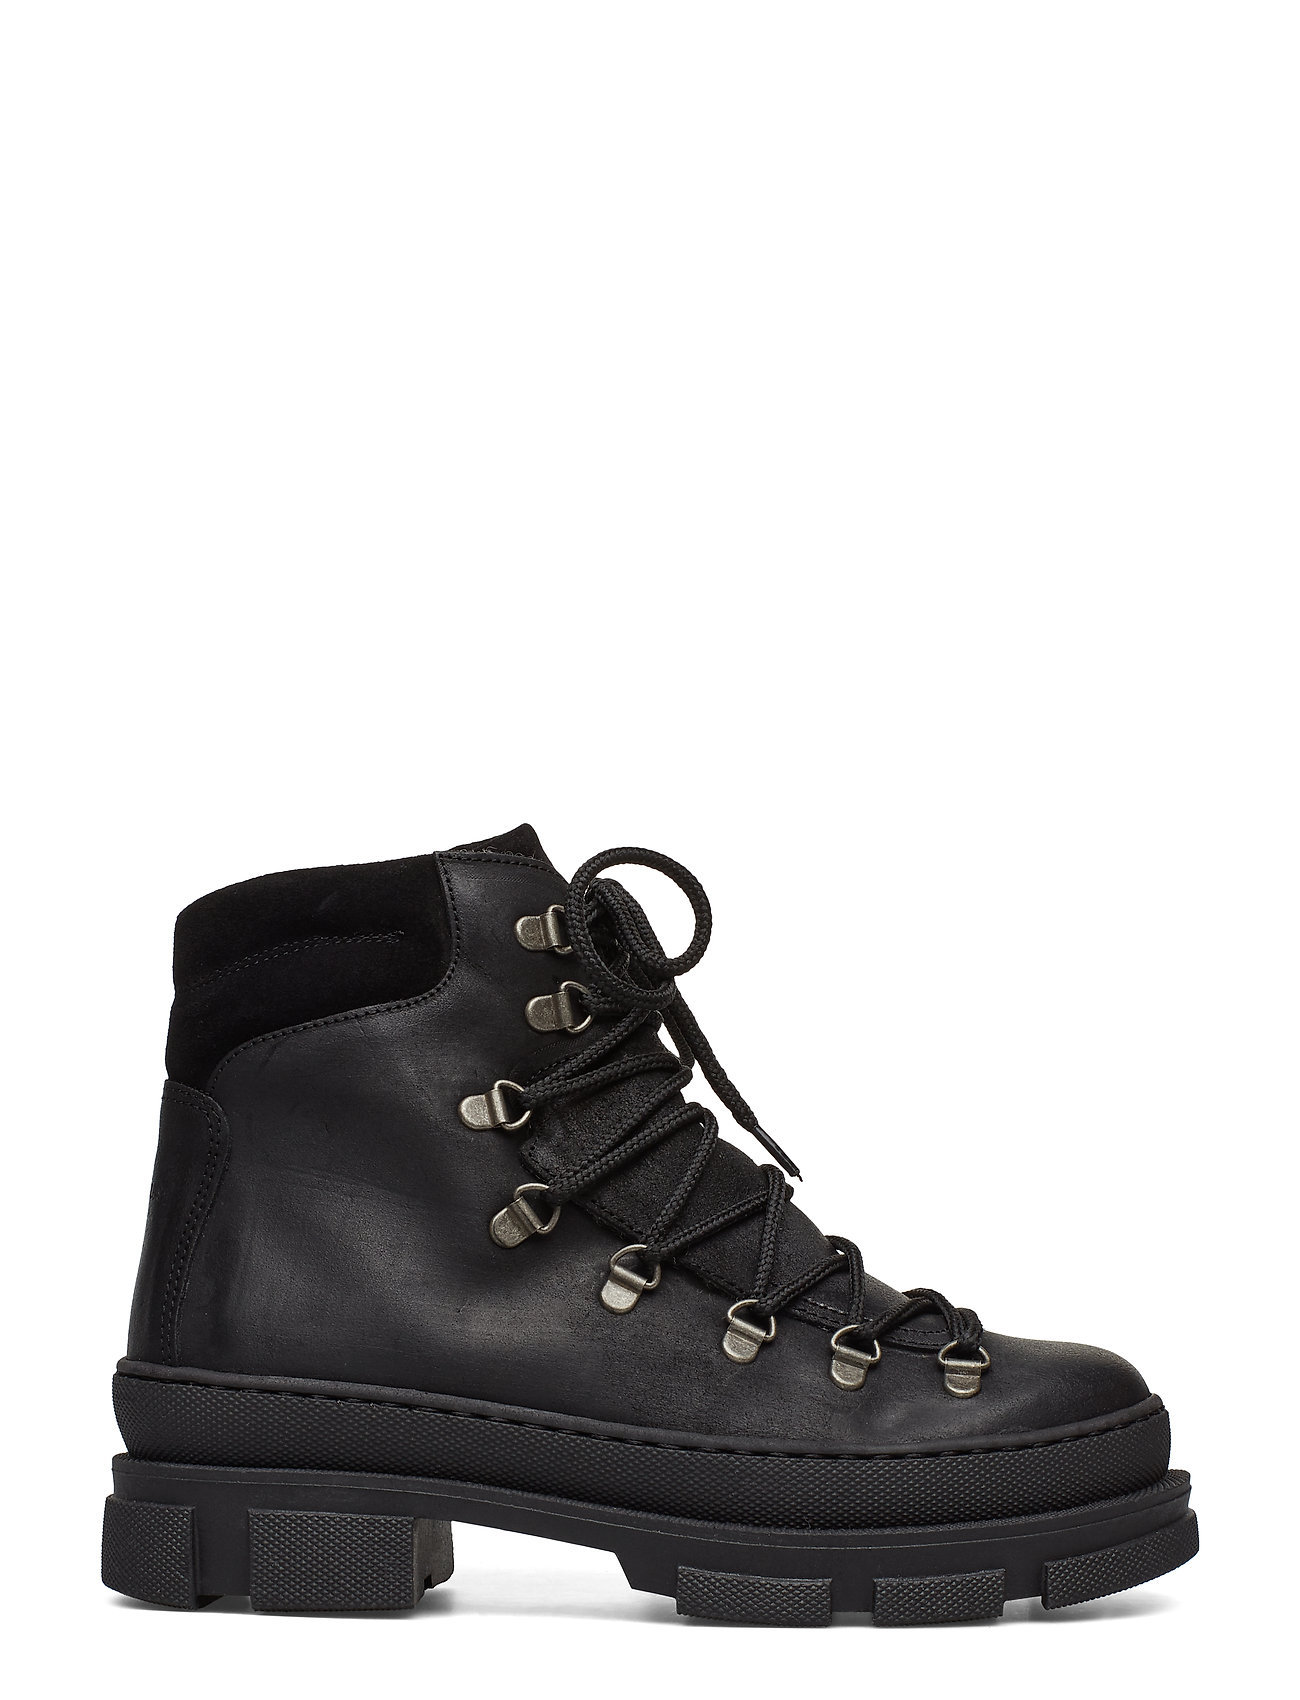 ANGULUS - Boots - flat - with laces - flade ankelstøvler - 2100/1163 black - 1